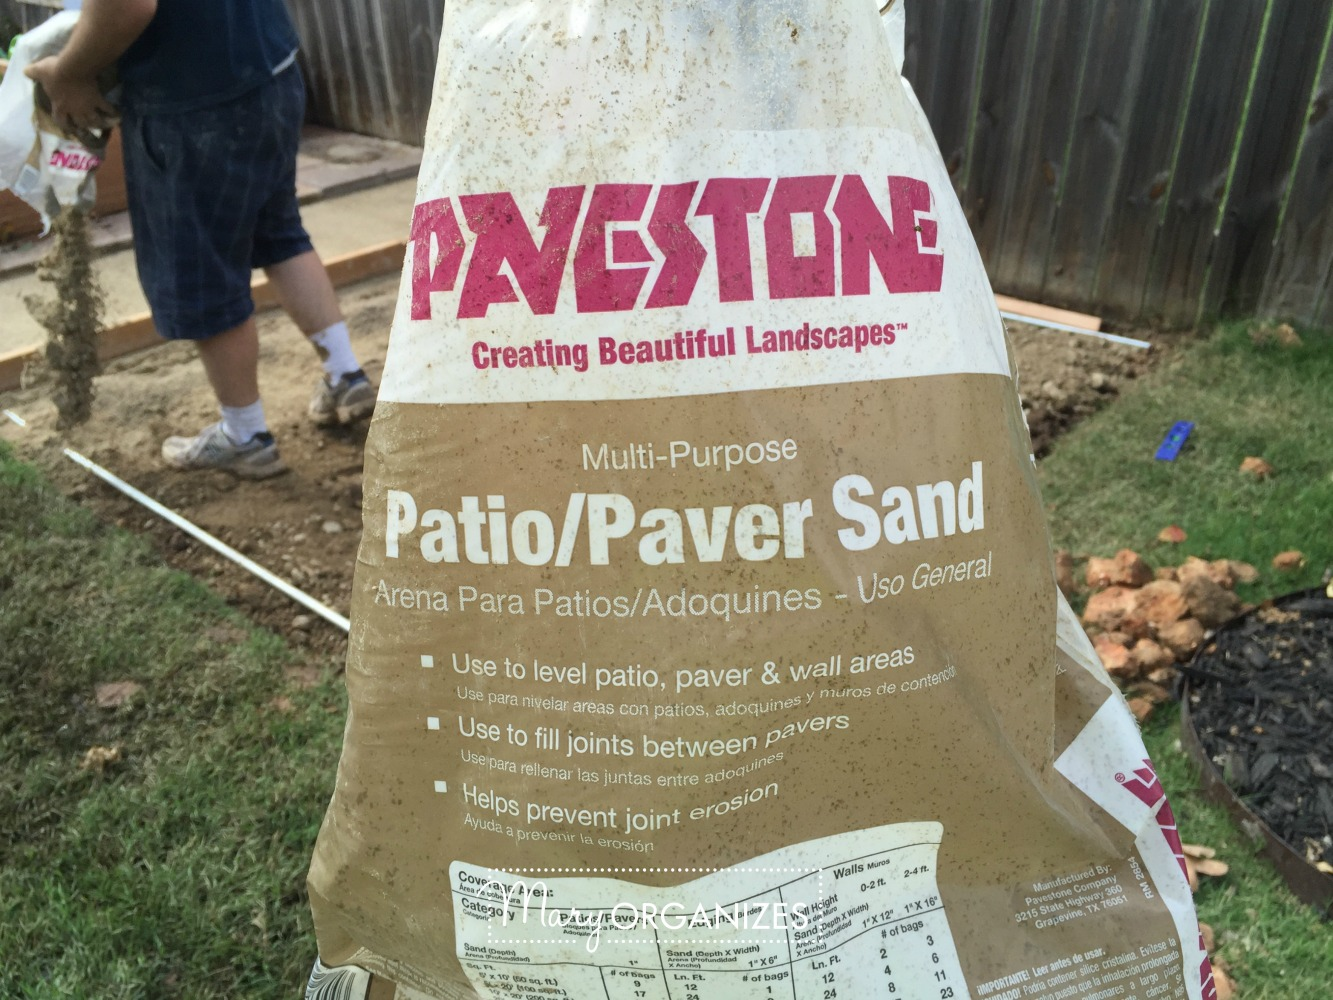 How To Install Paver Patio - My Raised Garden Foundation 9